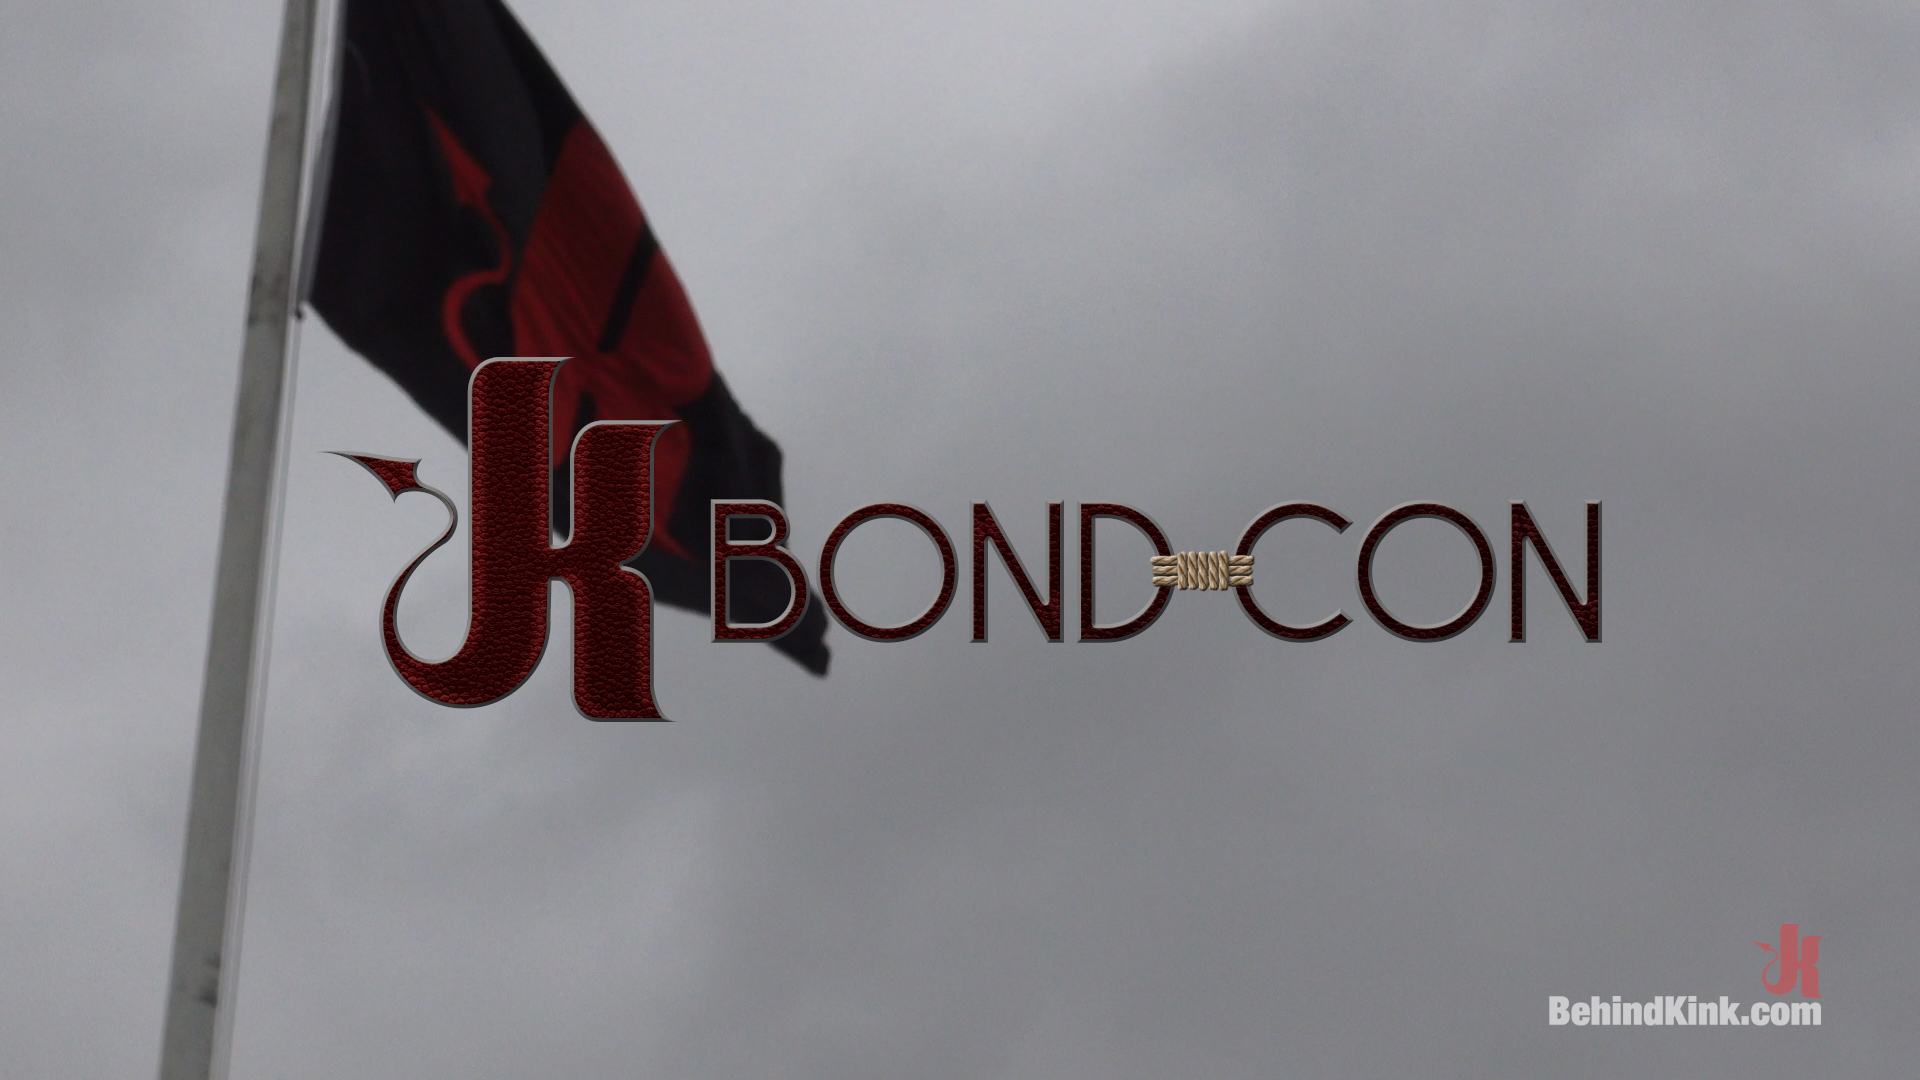 Bondcon weekend